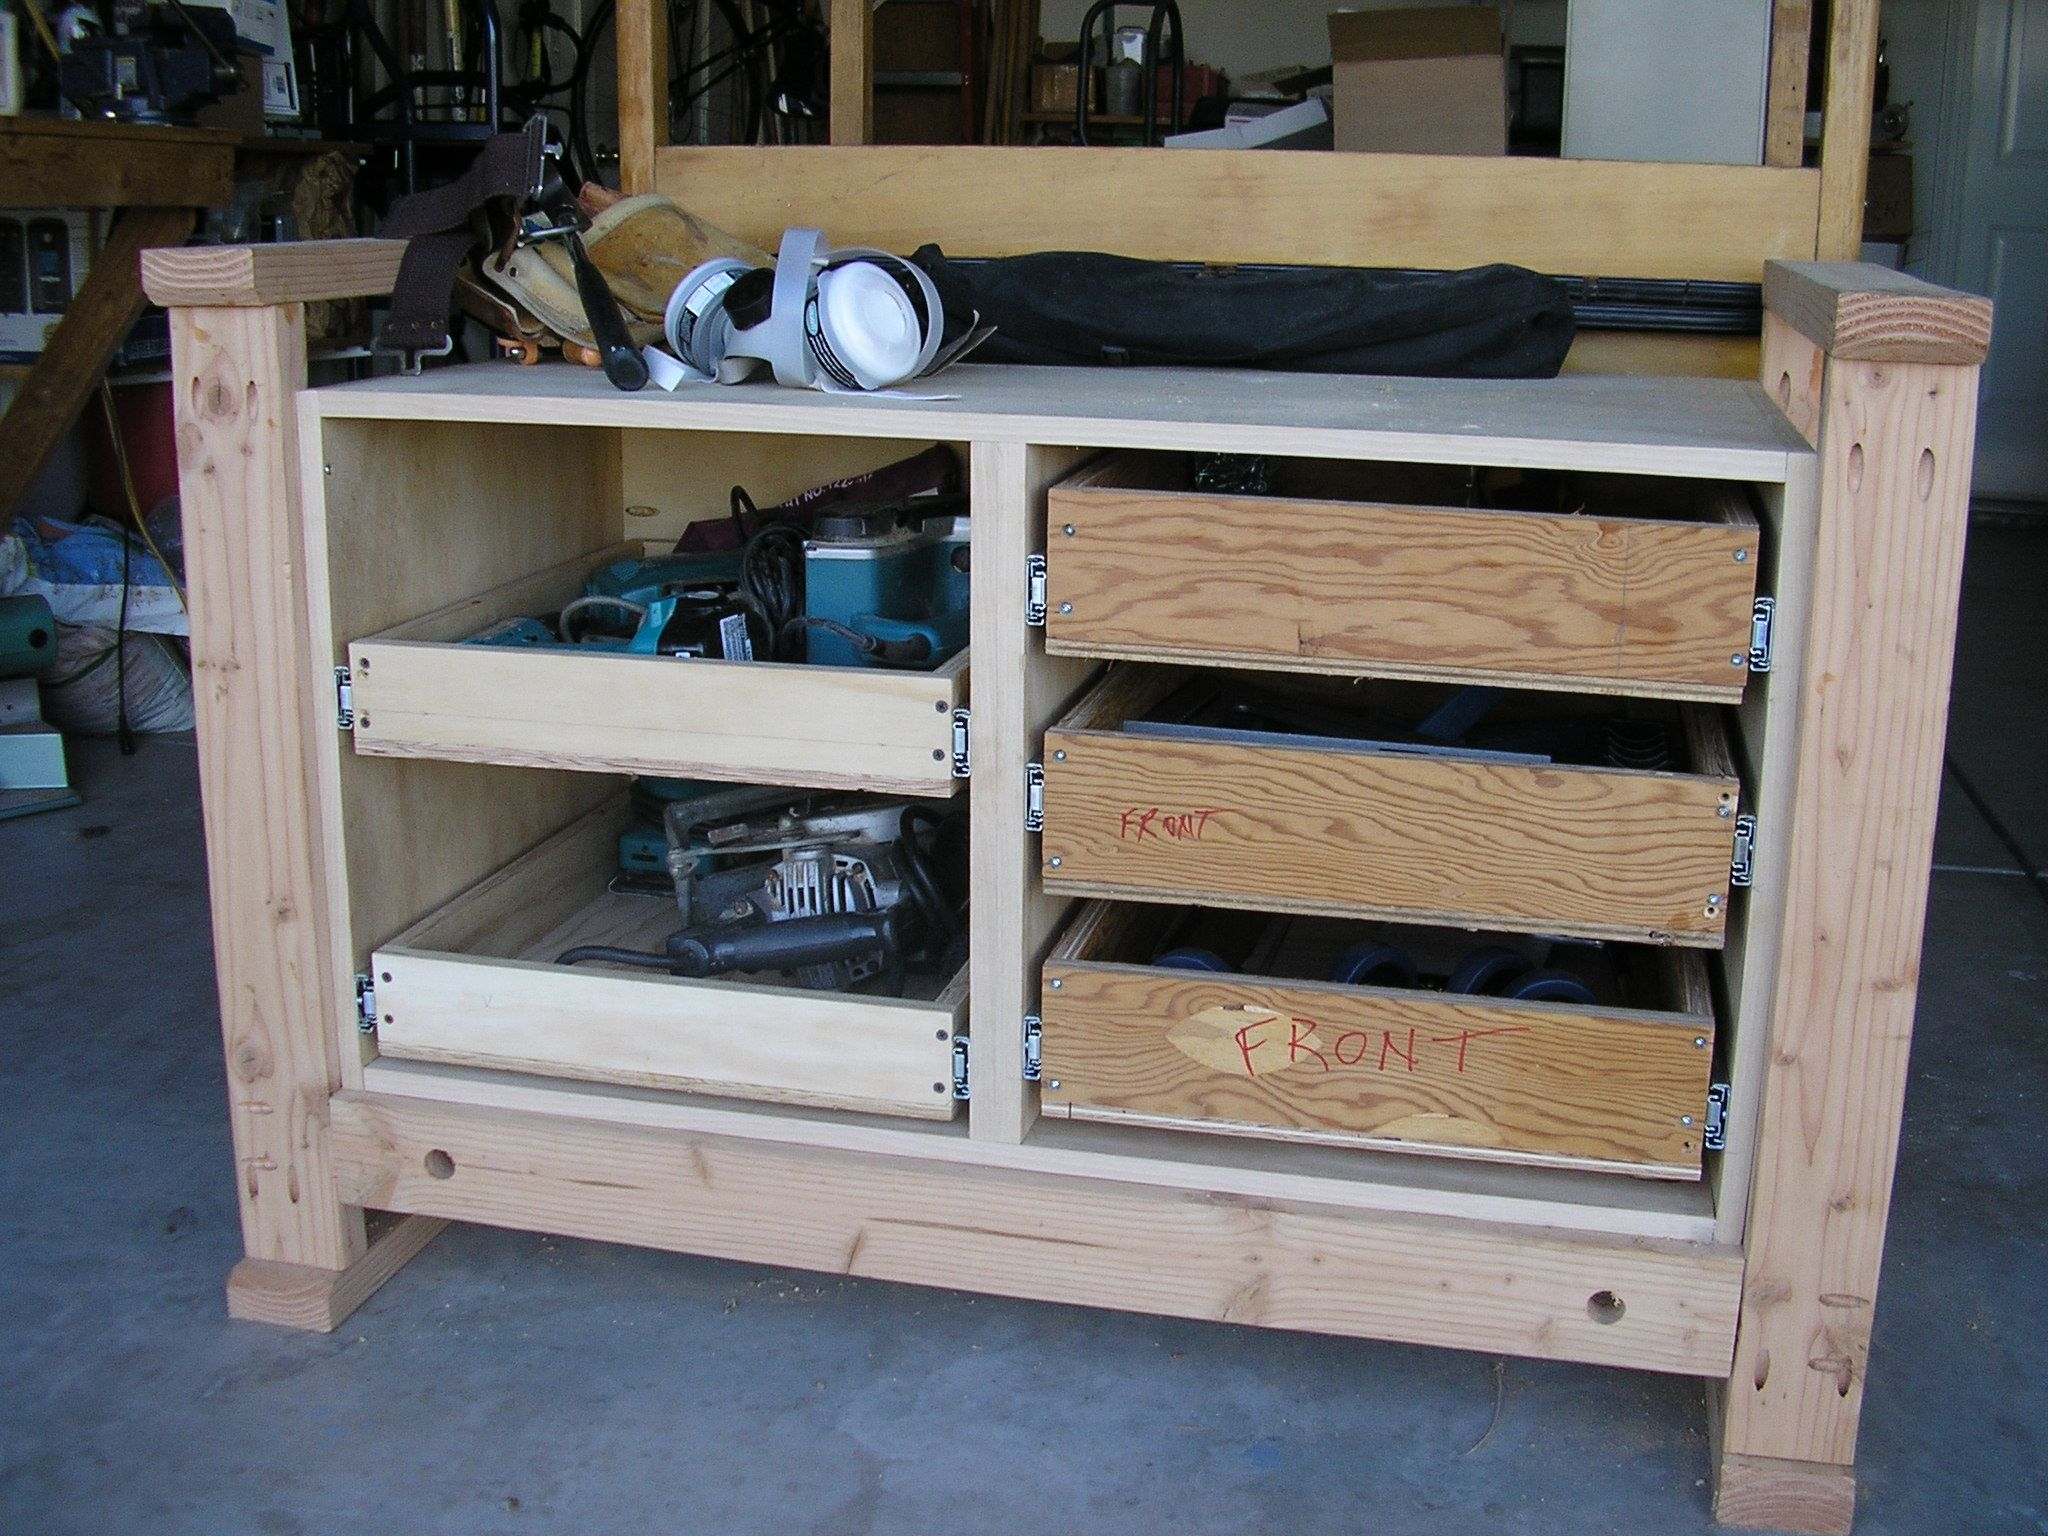 Diy Bookshelf Kreg Jig